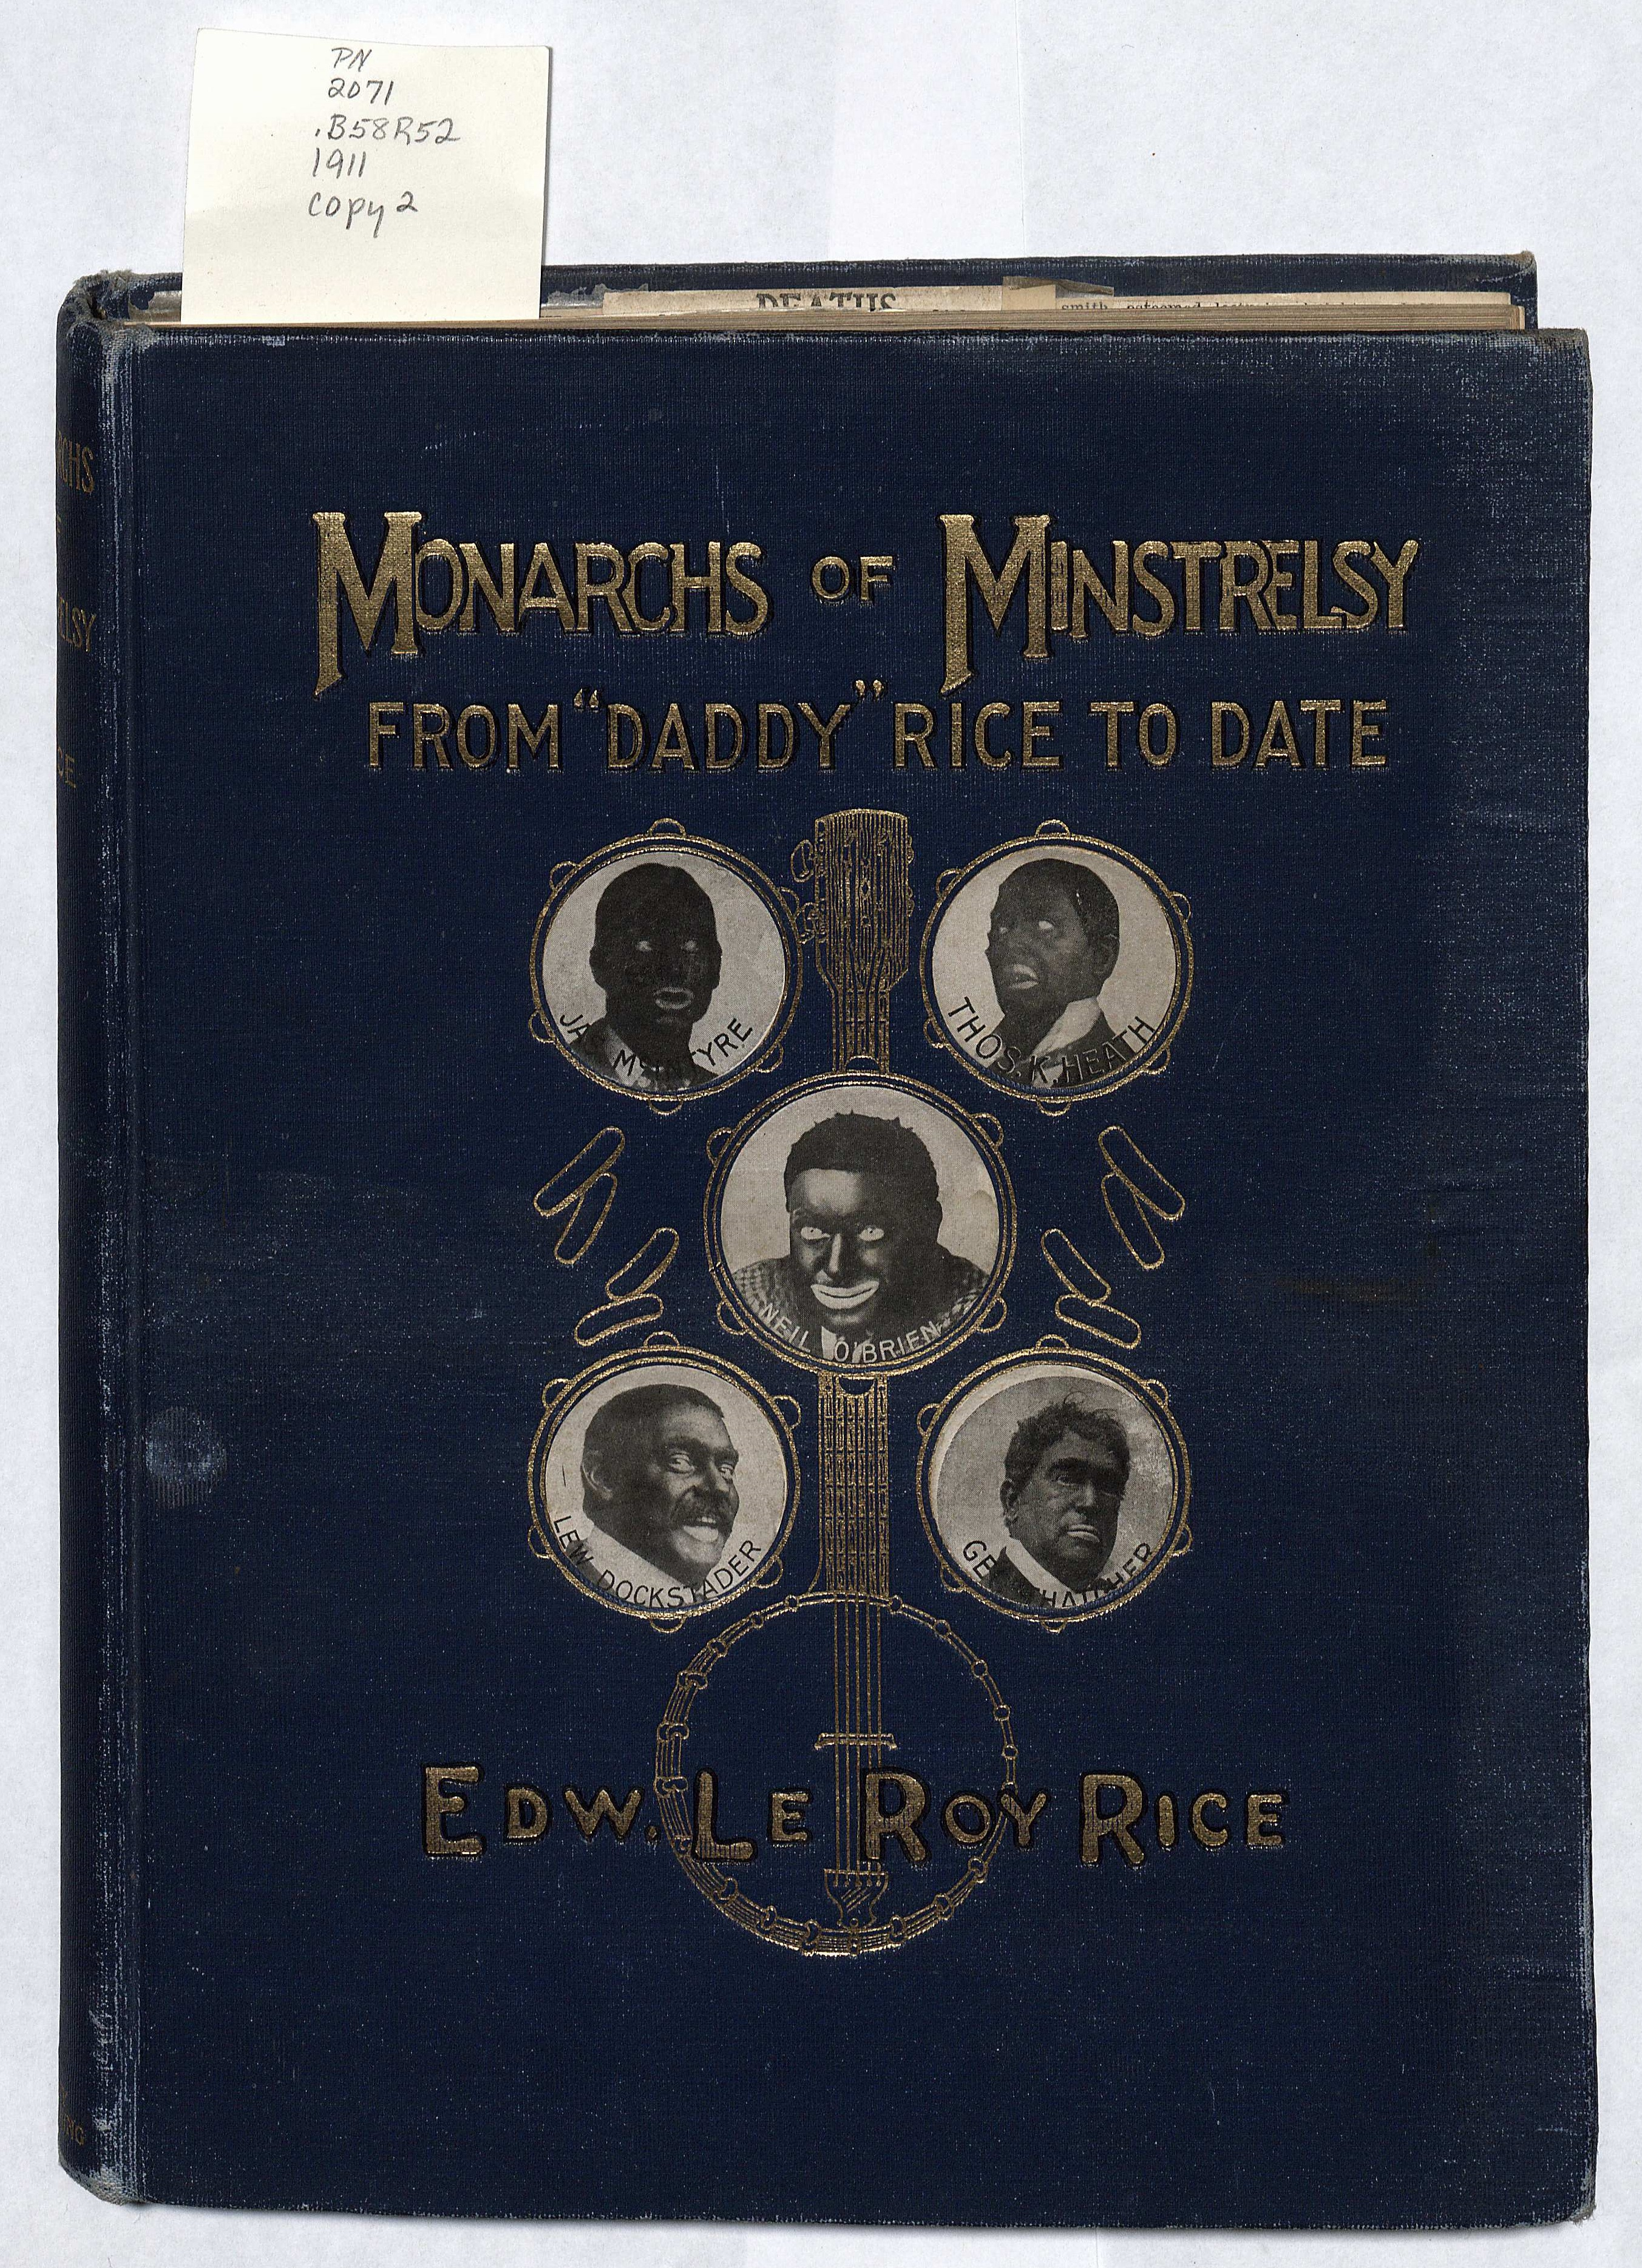 The cover of one of the two heavily annotated copies of Monarchs of Minstrelsy in Special Collections. (Image by Molly Schwartzburg.)